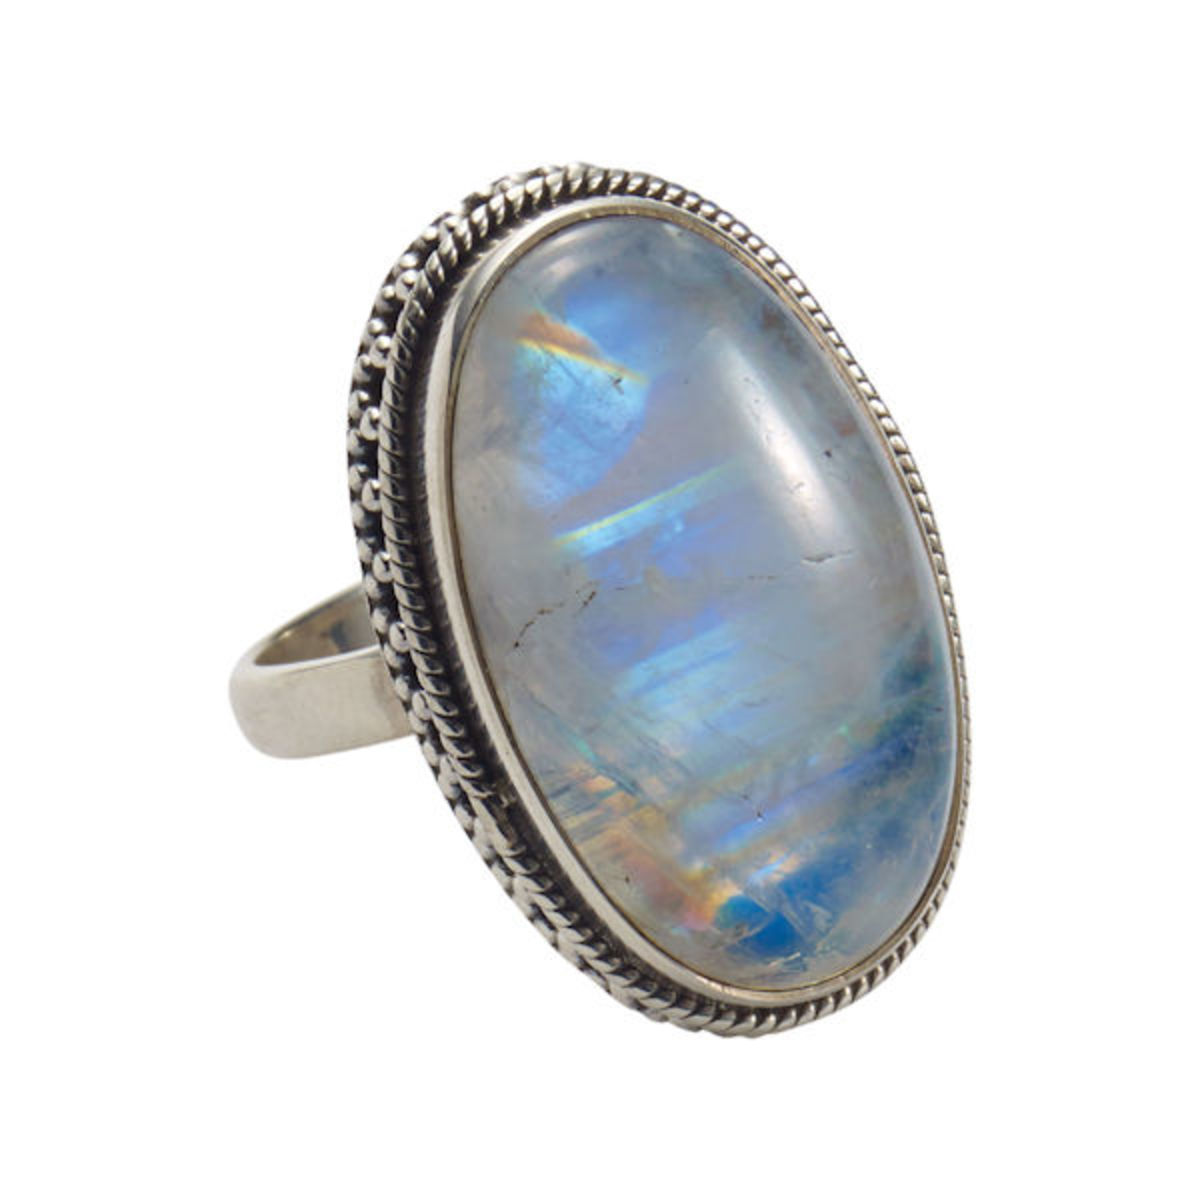 Moonstone is traditionally known as a protective stone that helped travelers.